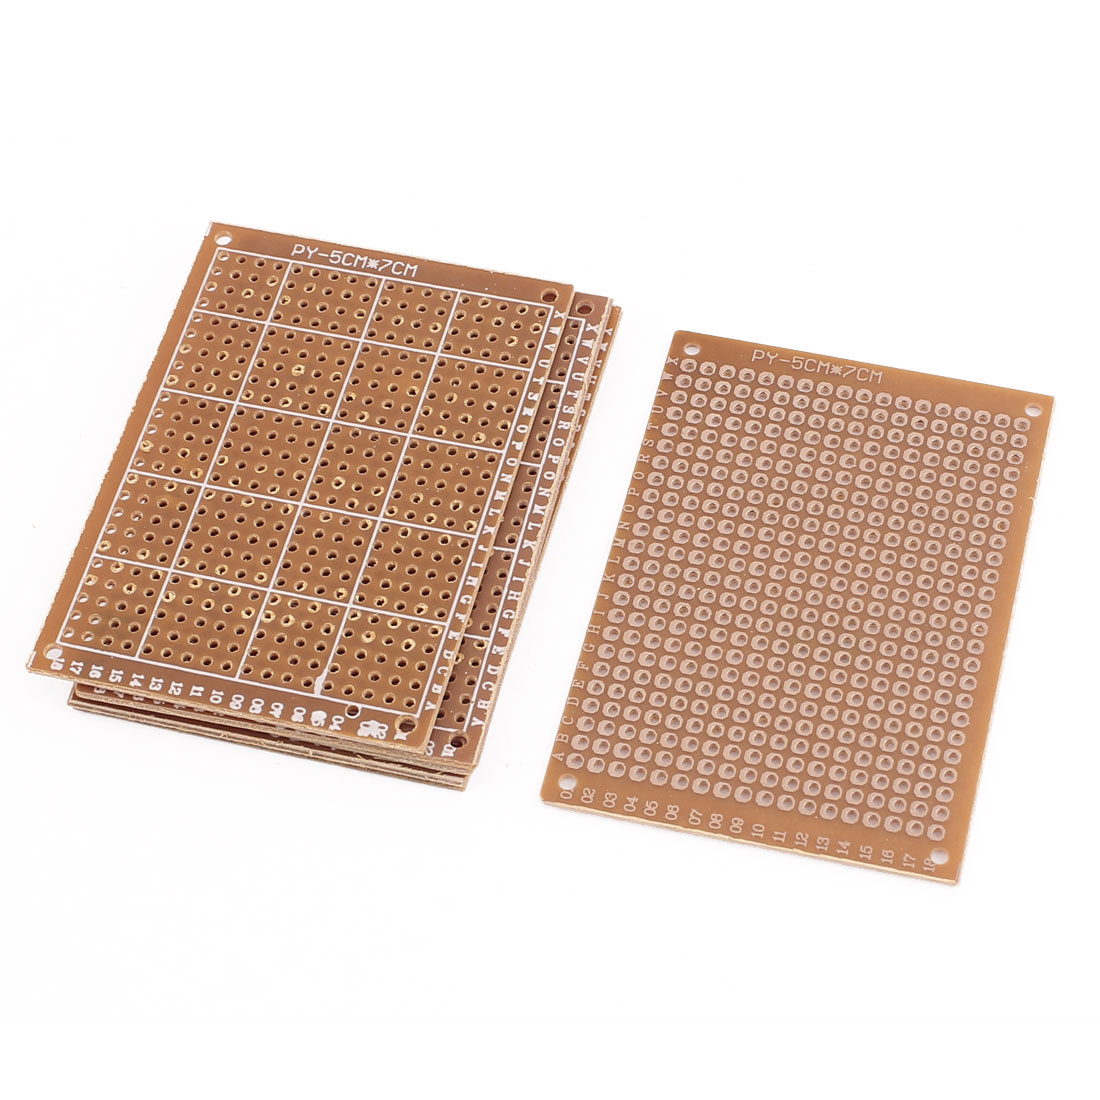 5x7cm Single Sided Circuit Board Prototype PCB Stripboard Breadboard 6pcs